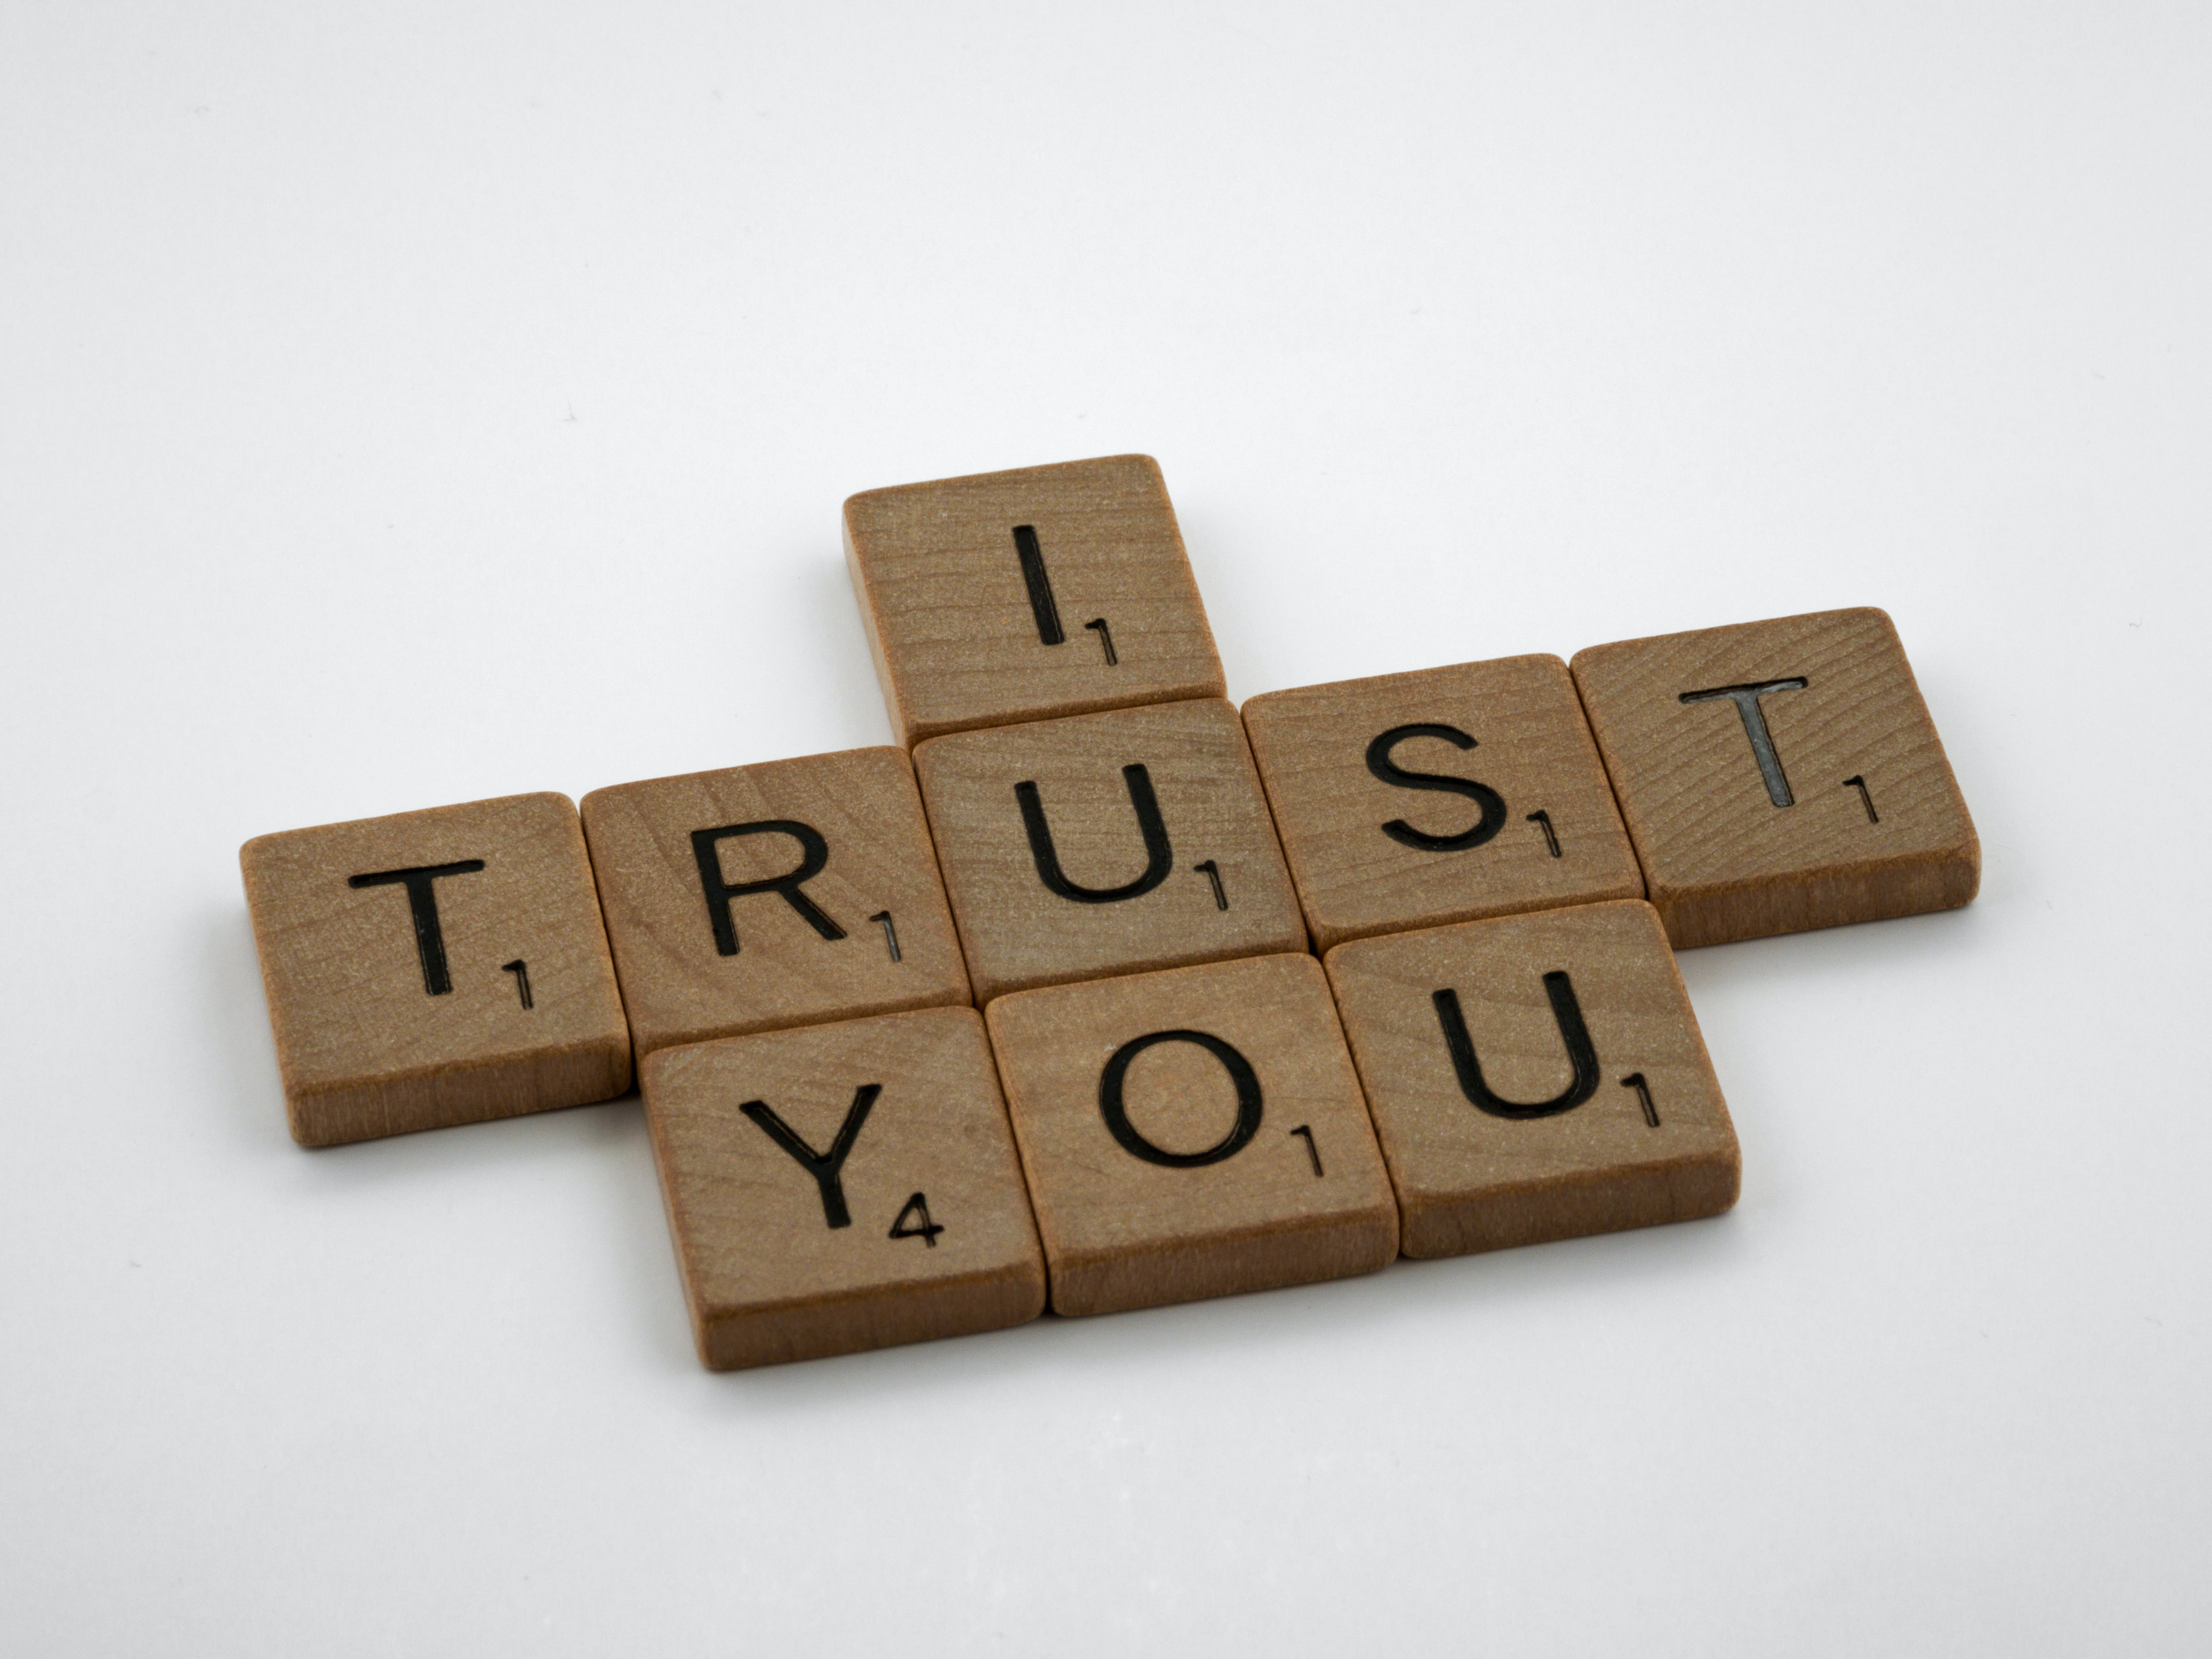 gain customer trust with data policies